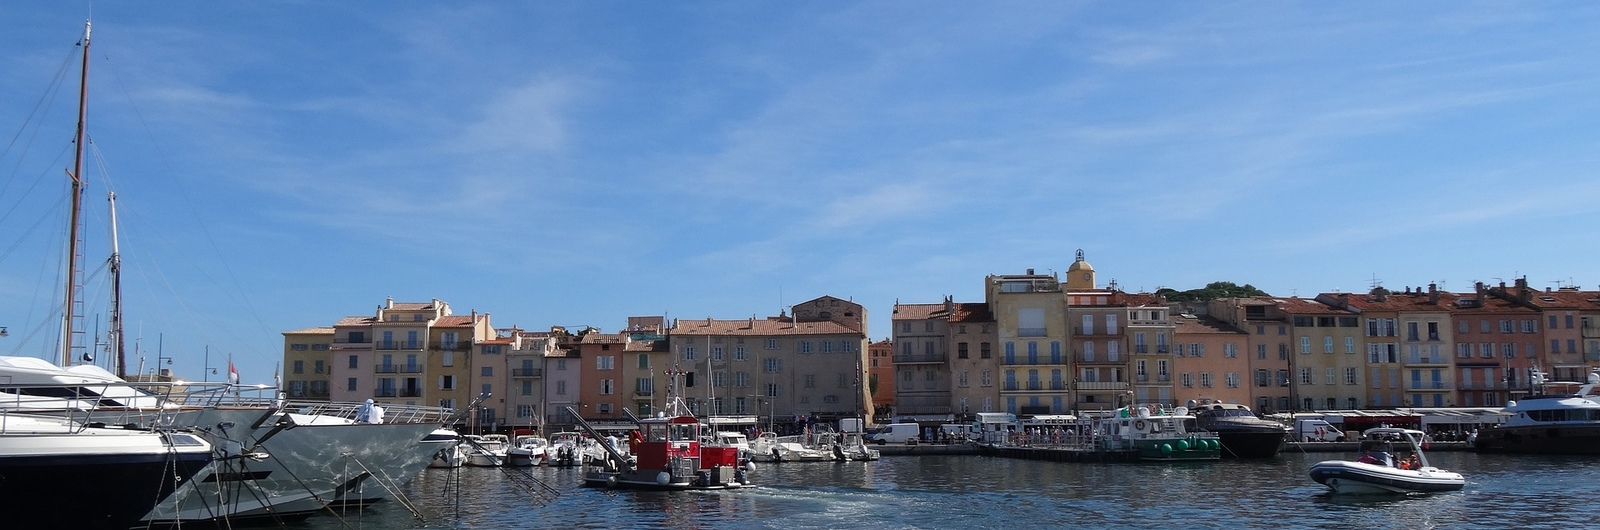 sainttropez city header